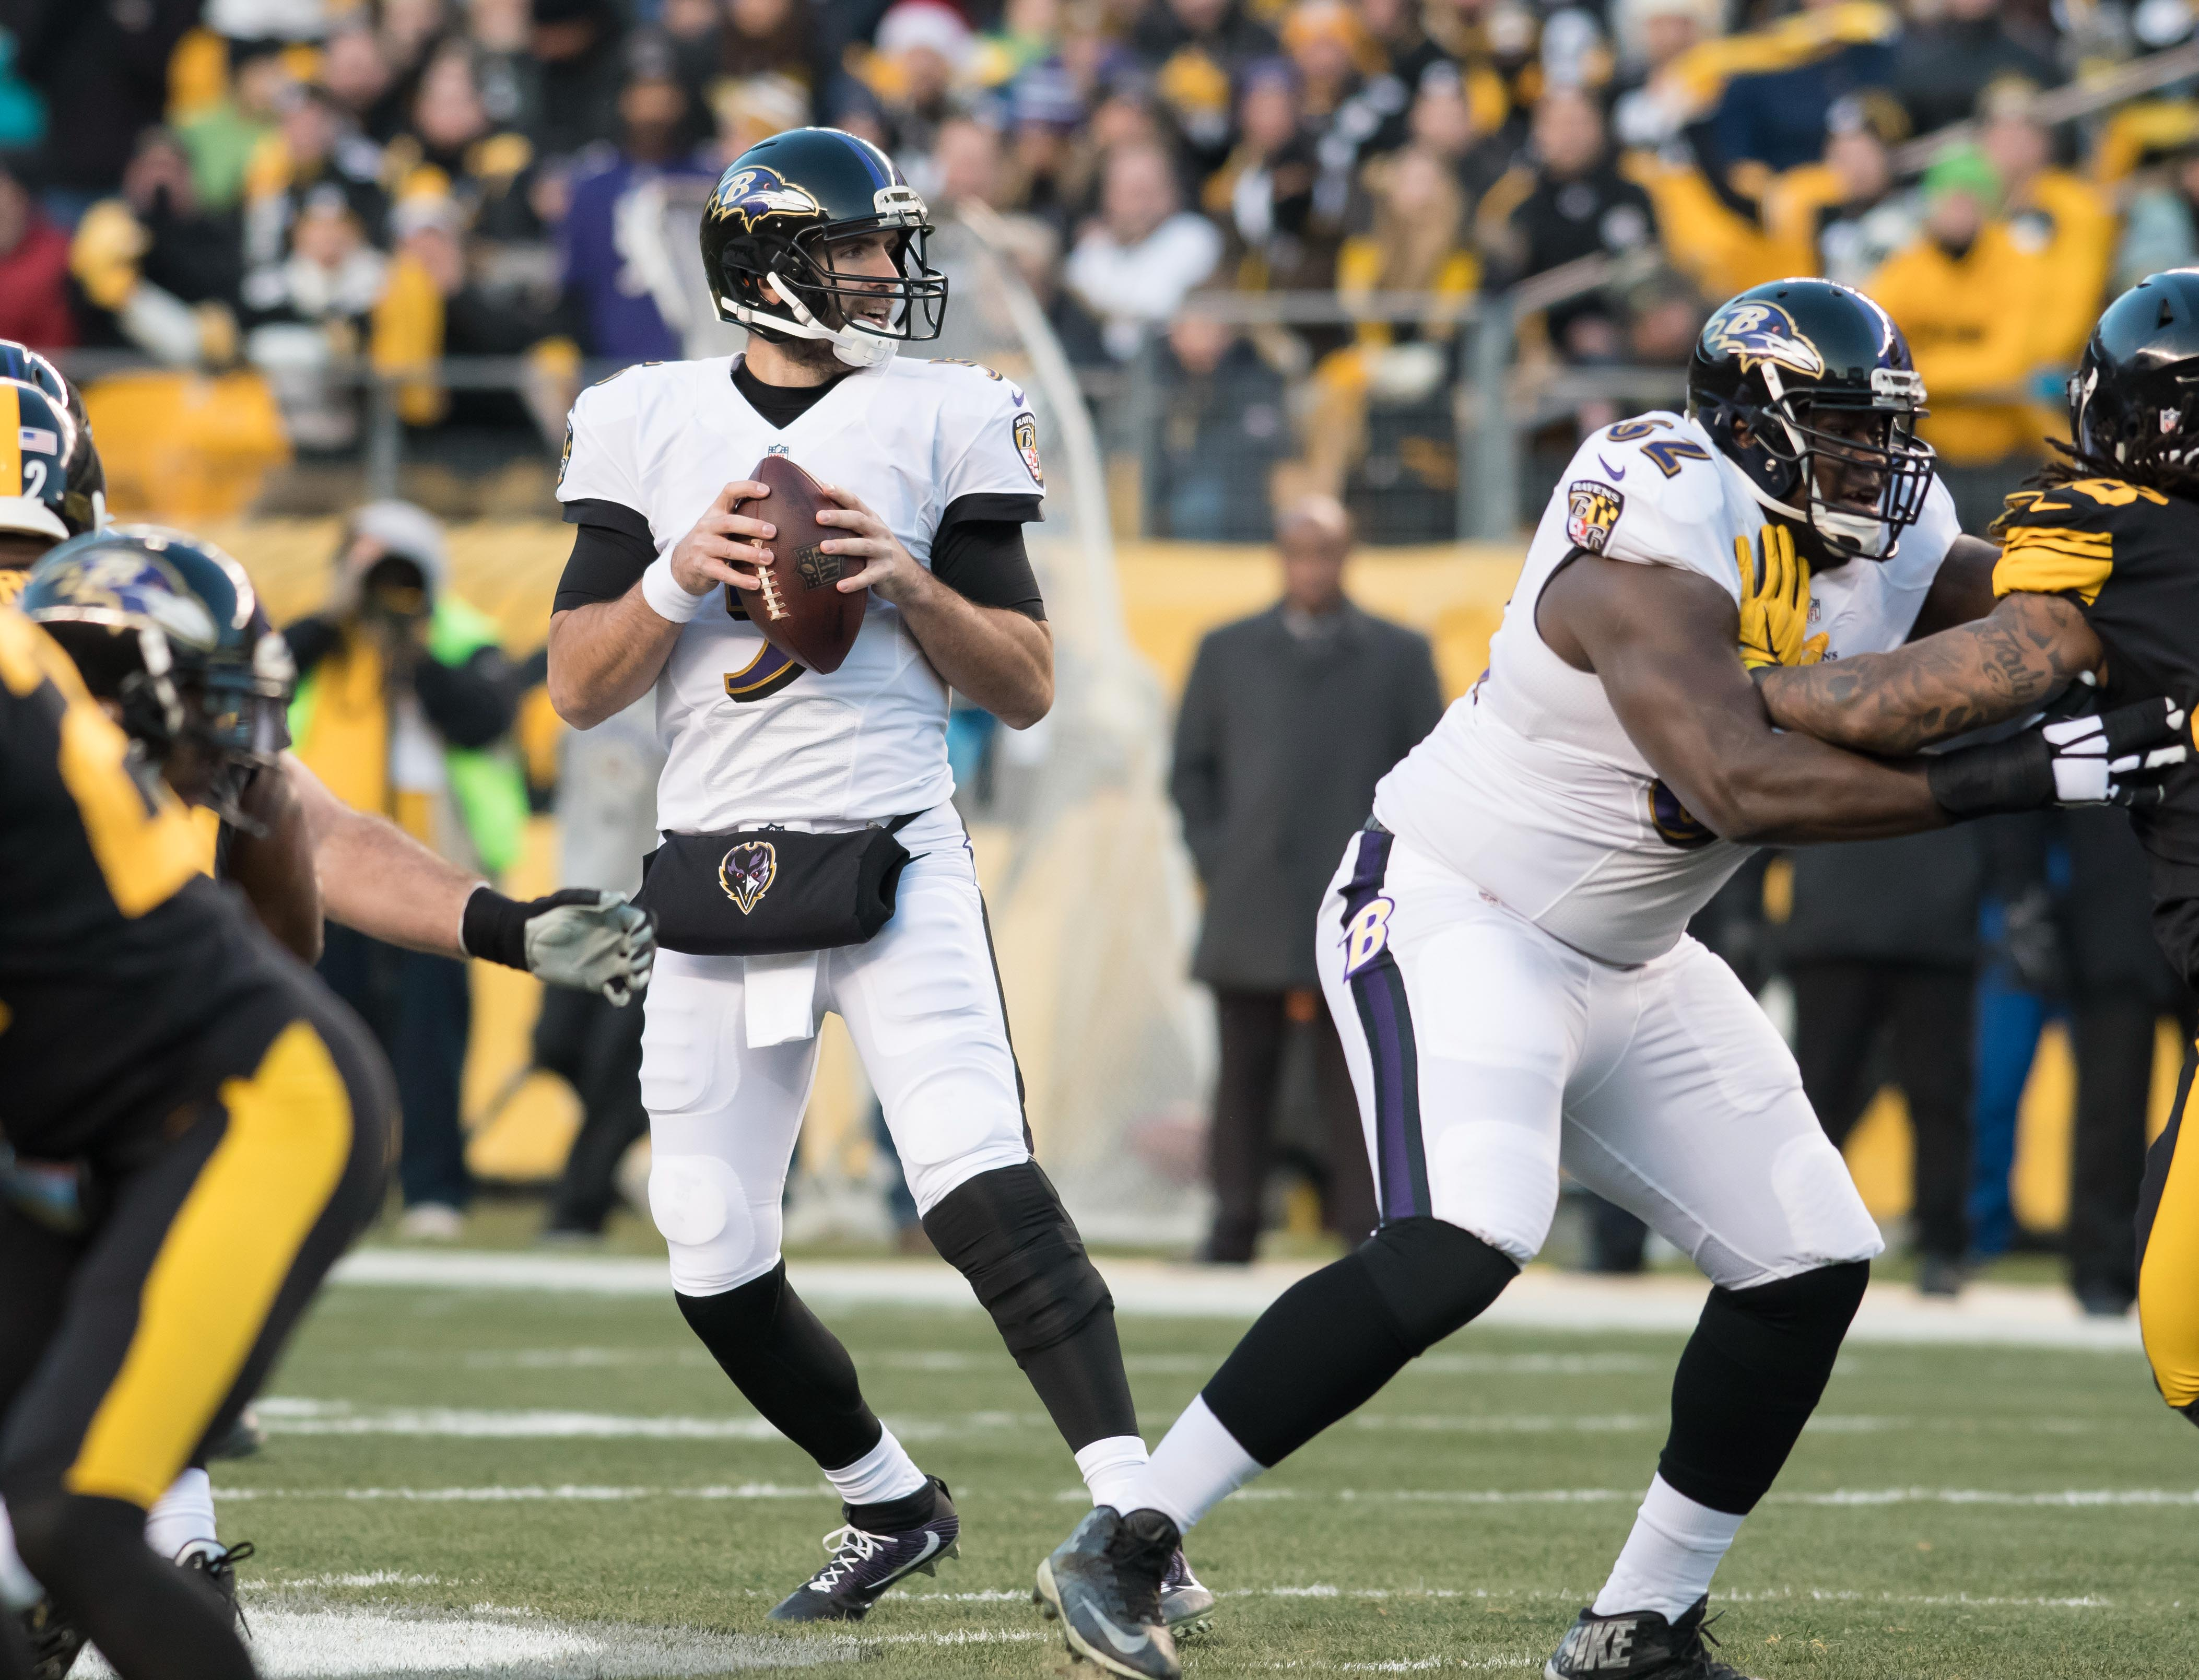 9785740-nfl-baltimore-ravens-at-pittsburgh-steelers